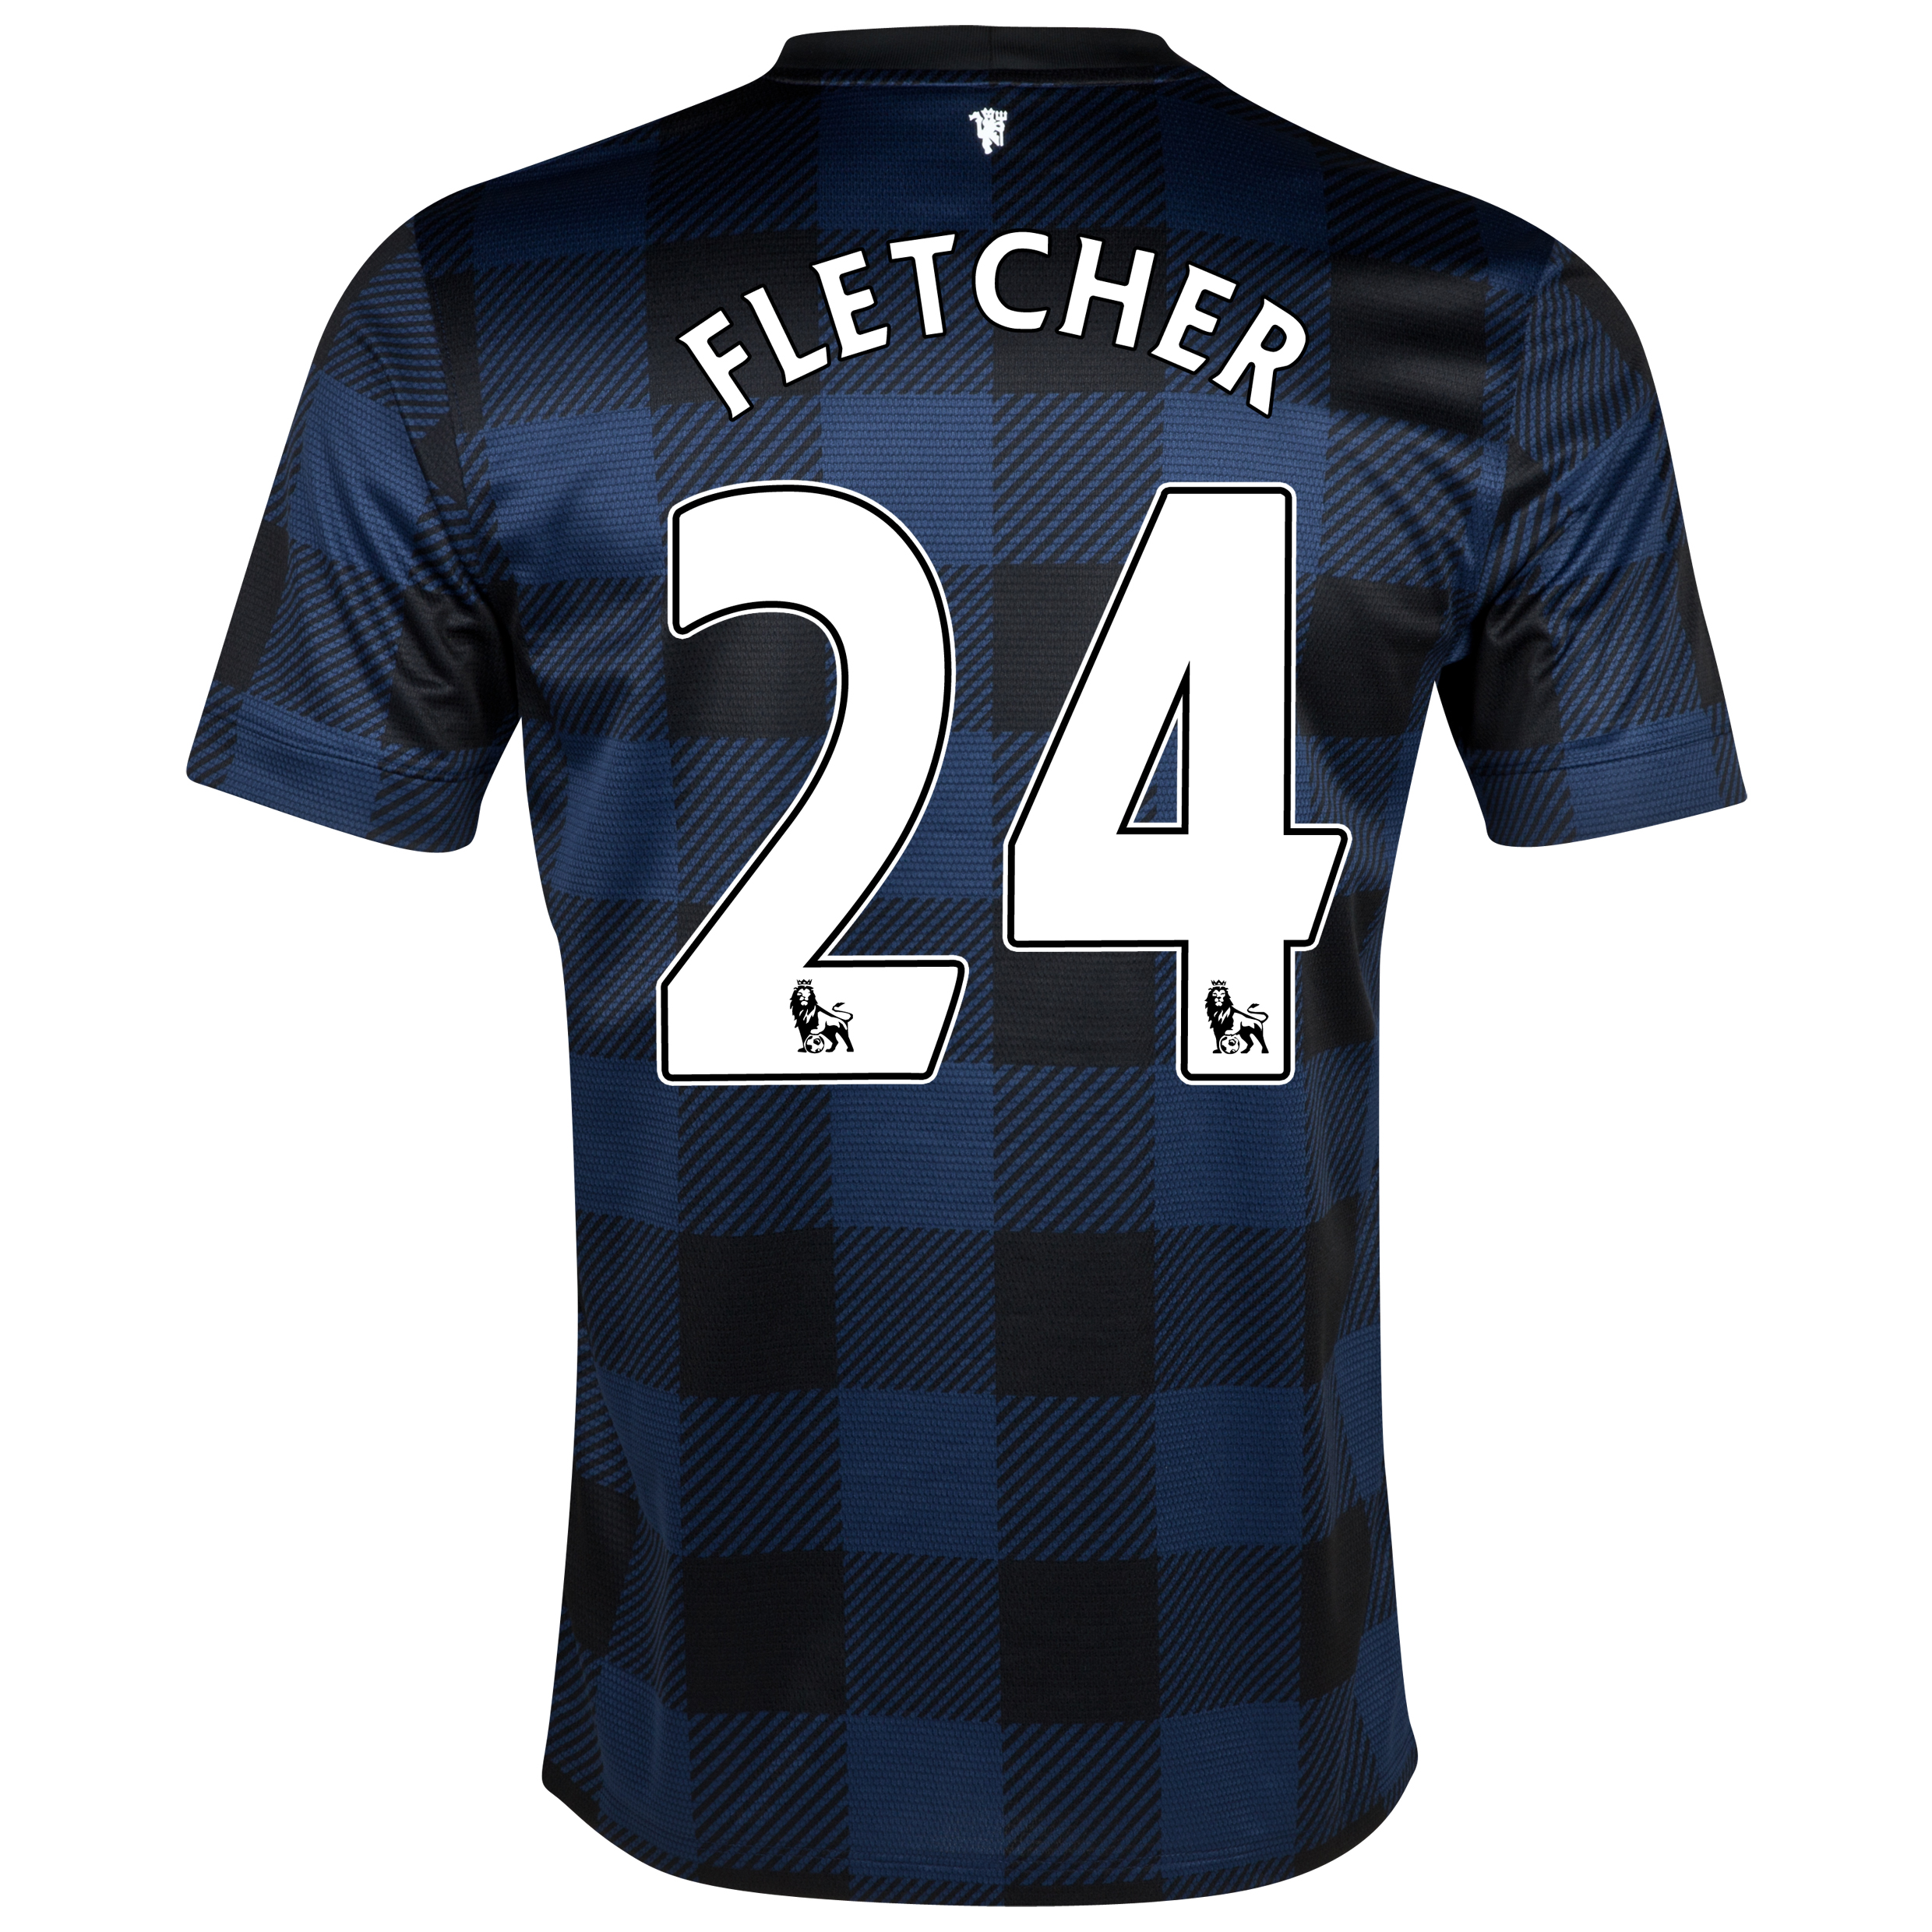 Manchester United Away Shirt 2013/14 - Kids with Fletcher 24 printing